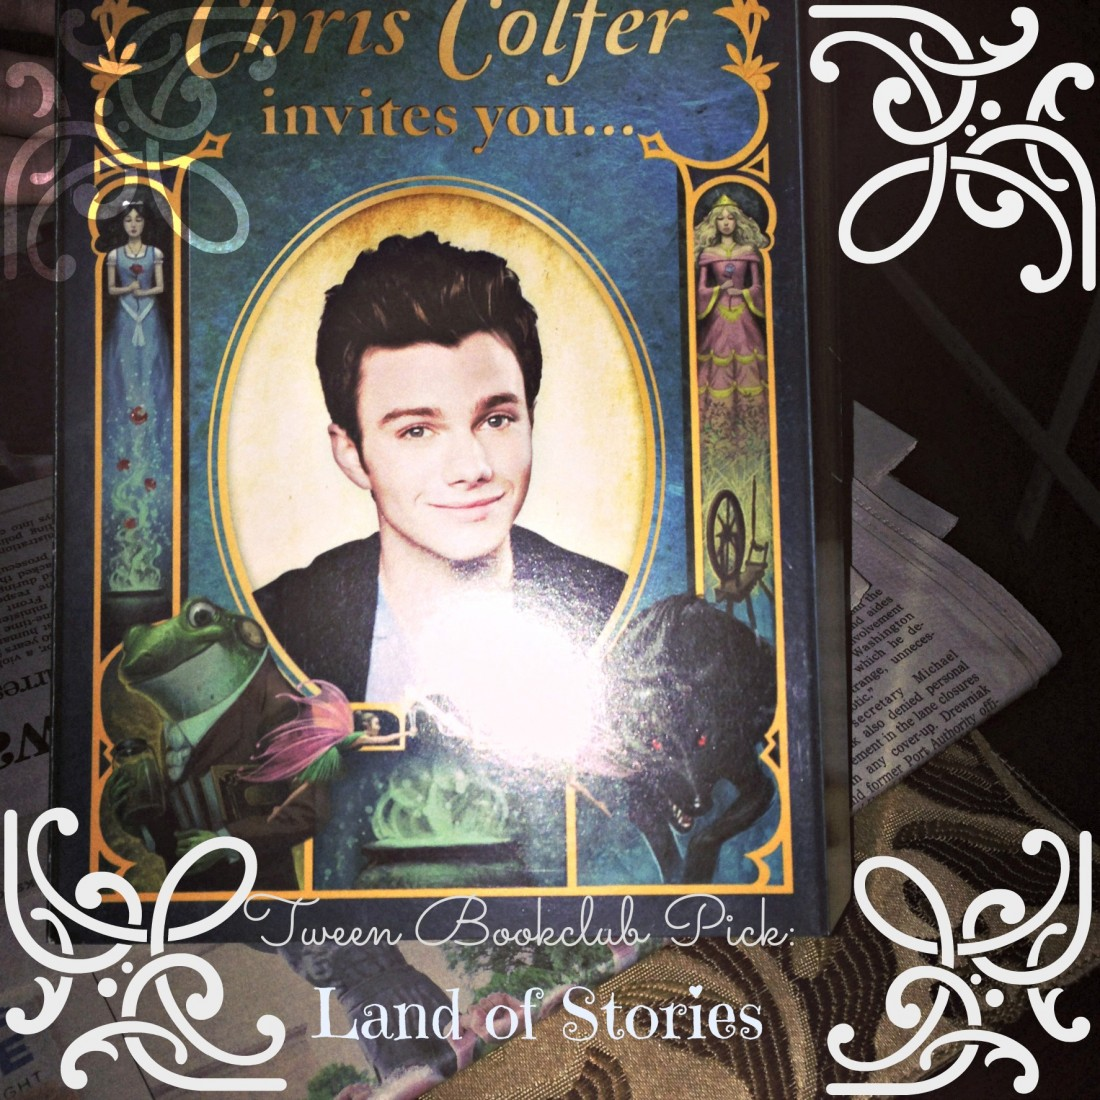 Tween Book Club Land of Stories by Chris Colfer